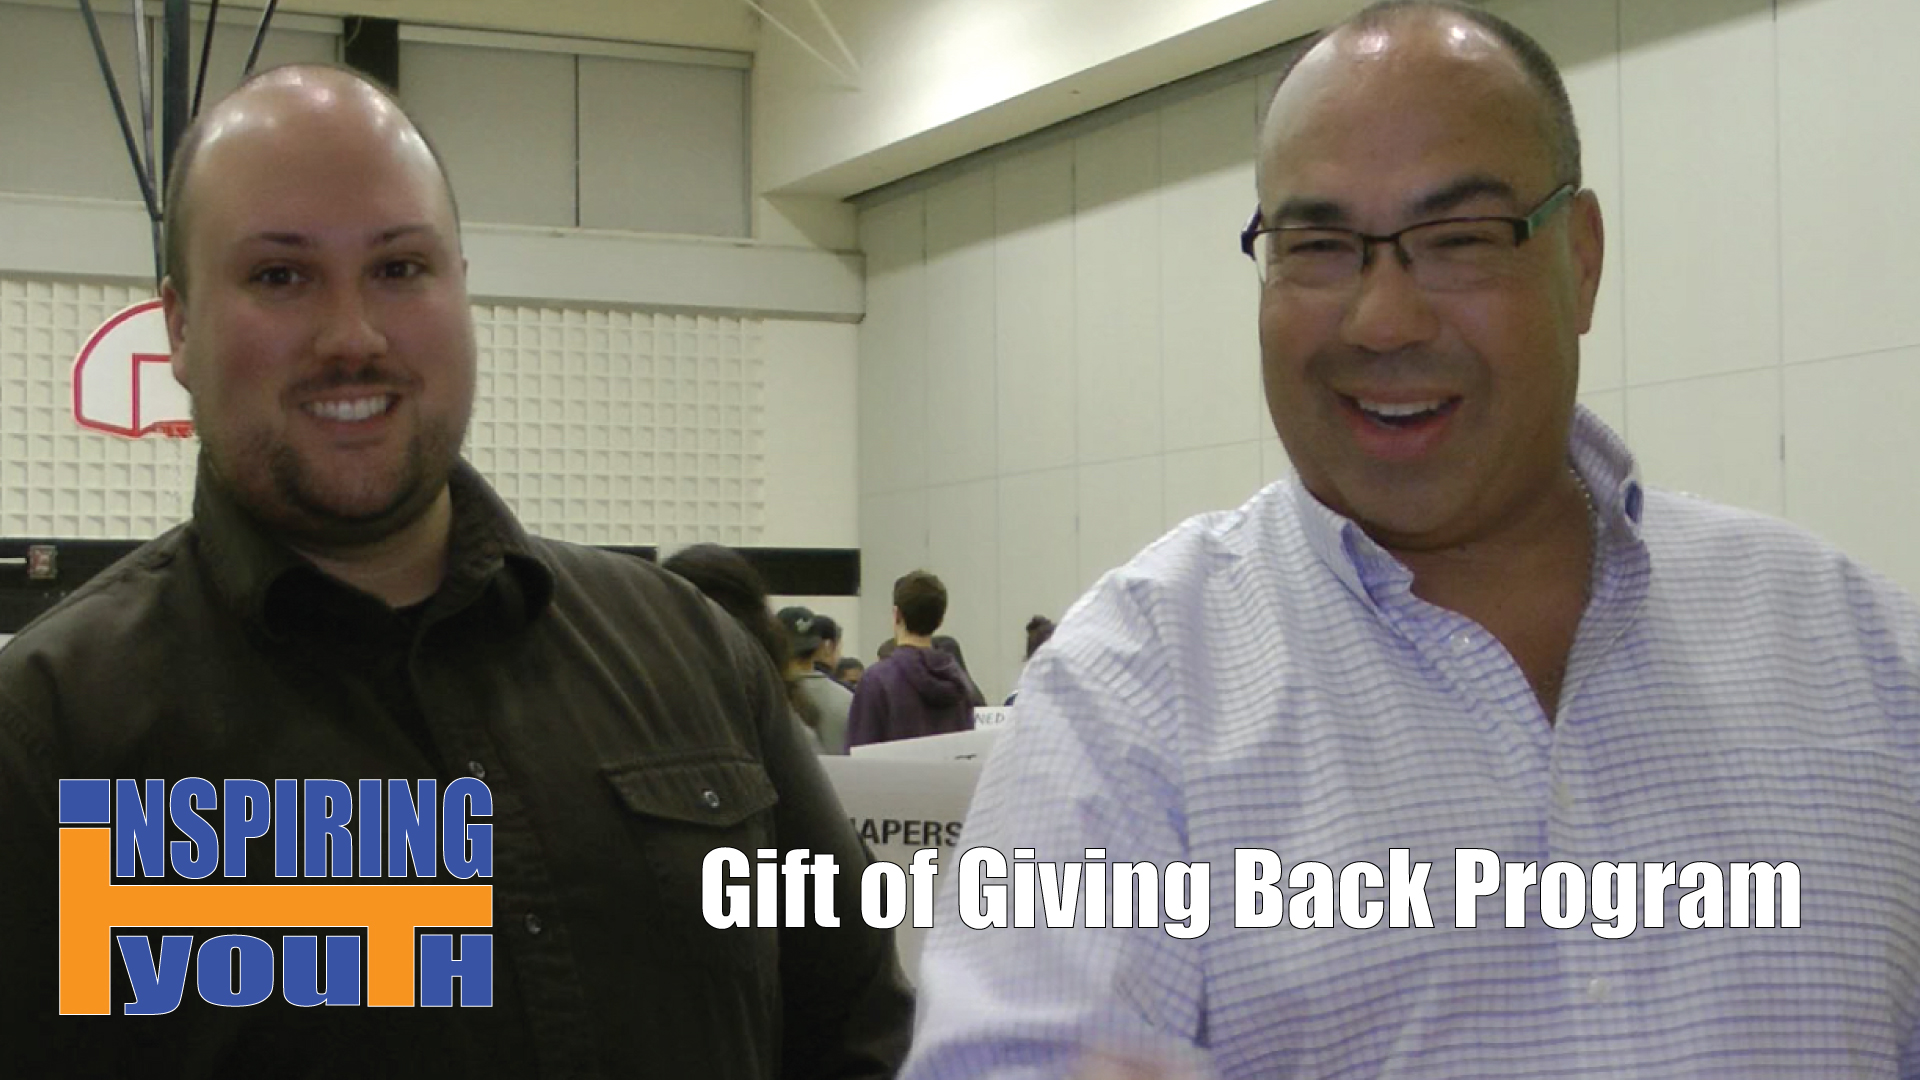 Inspiring Youth TV: Gift of Giving Back